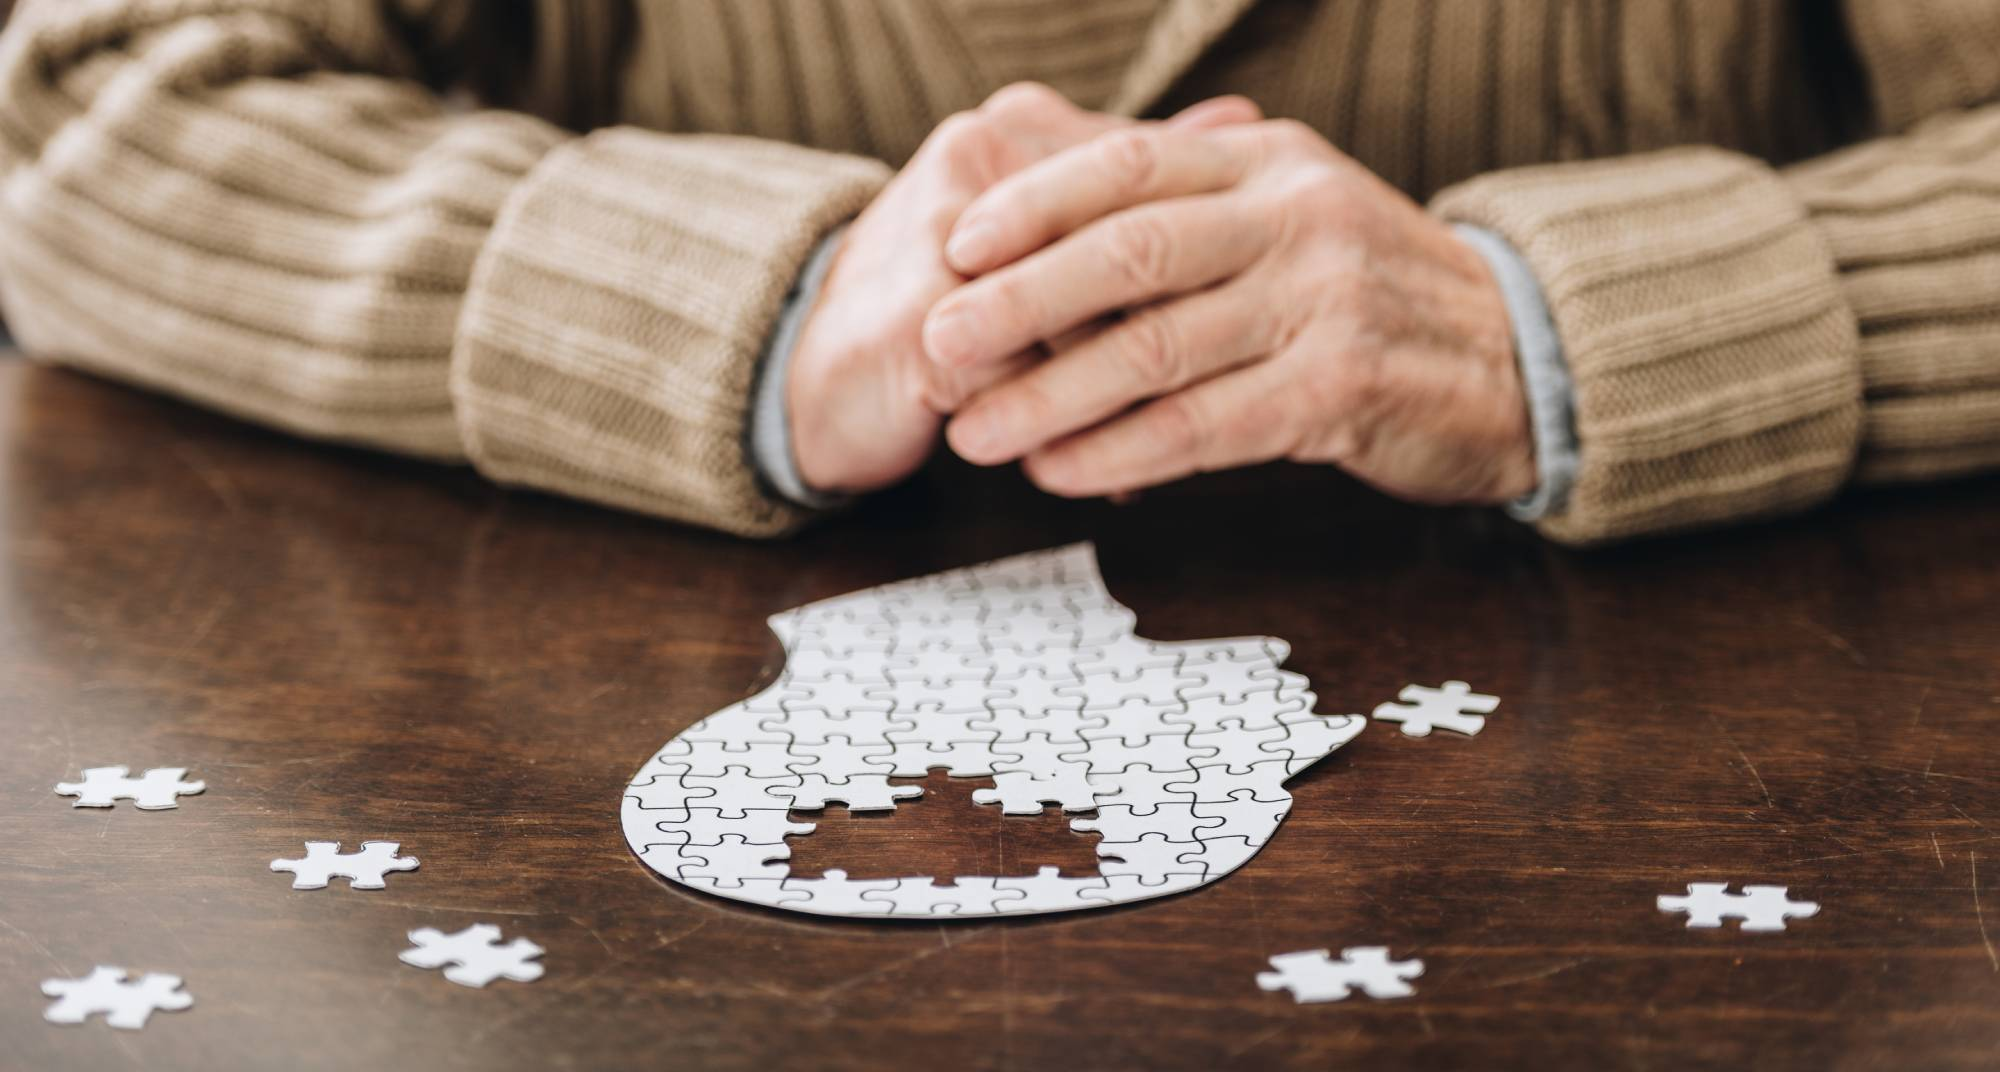 How to Deal with Dementia in a Parent